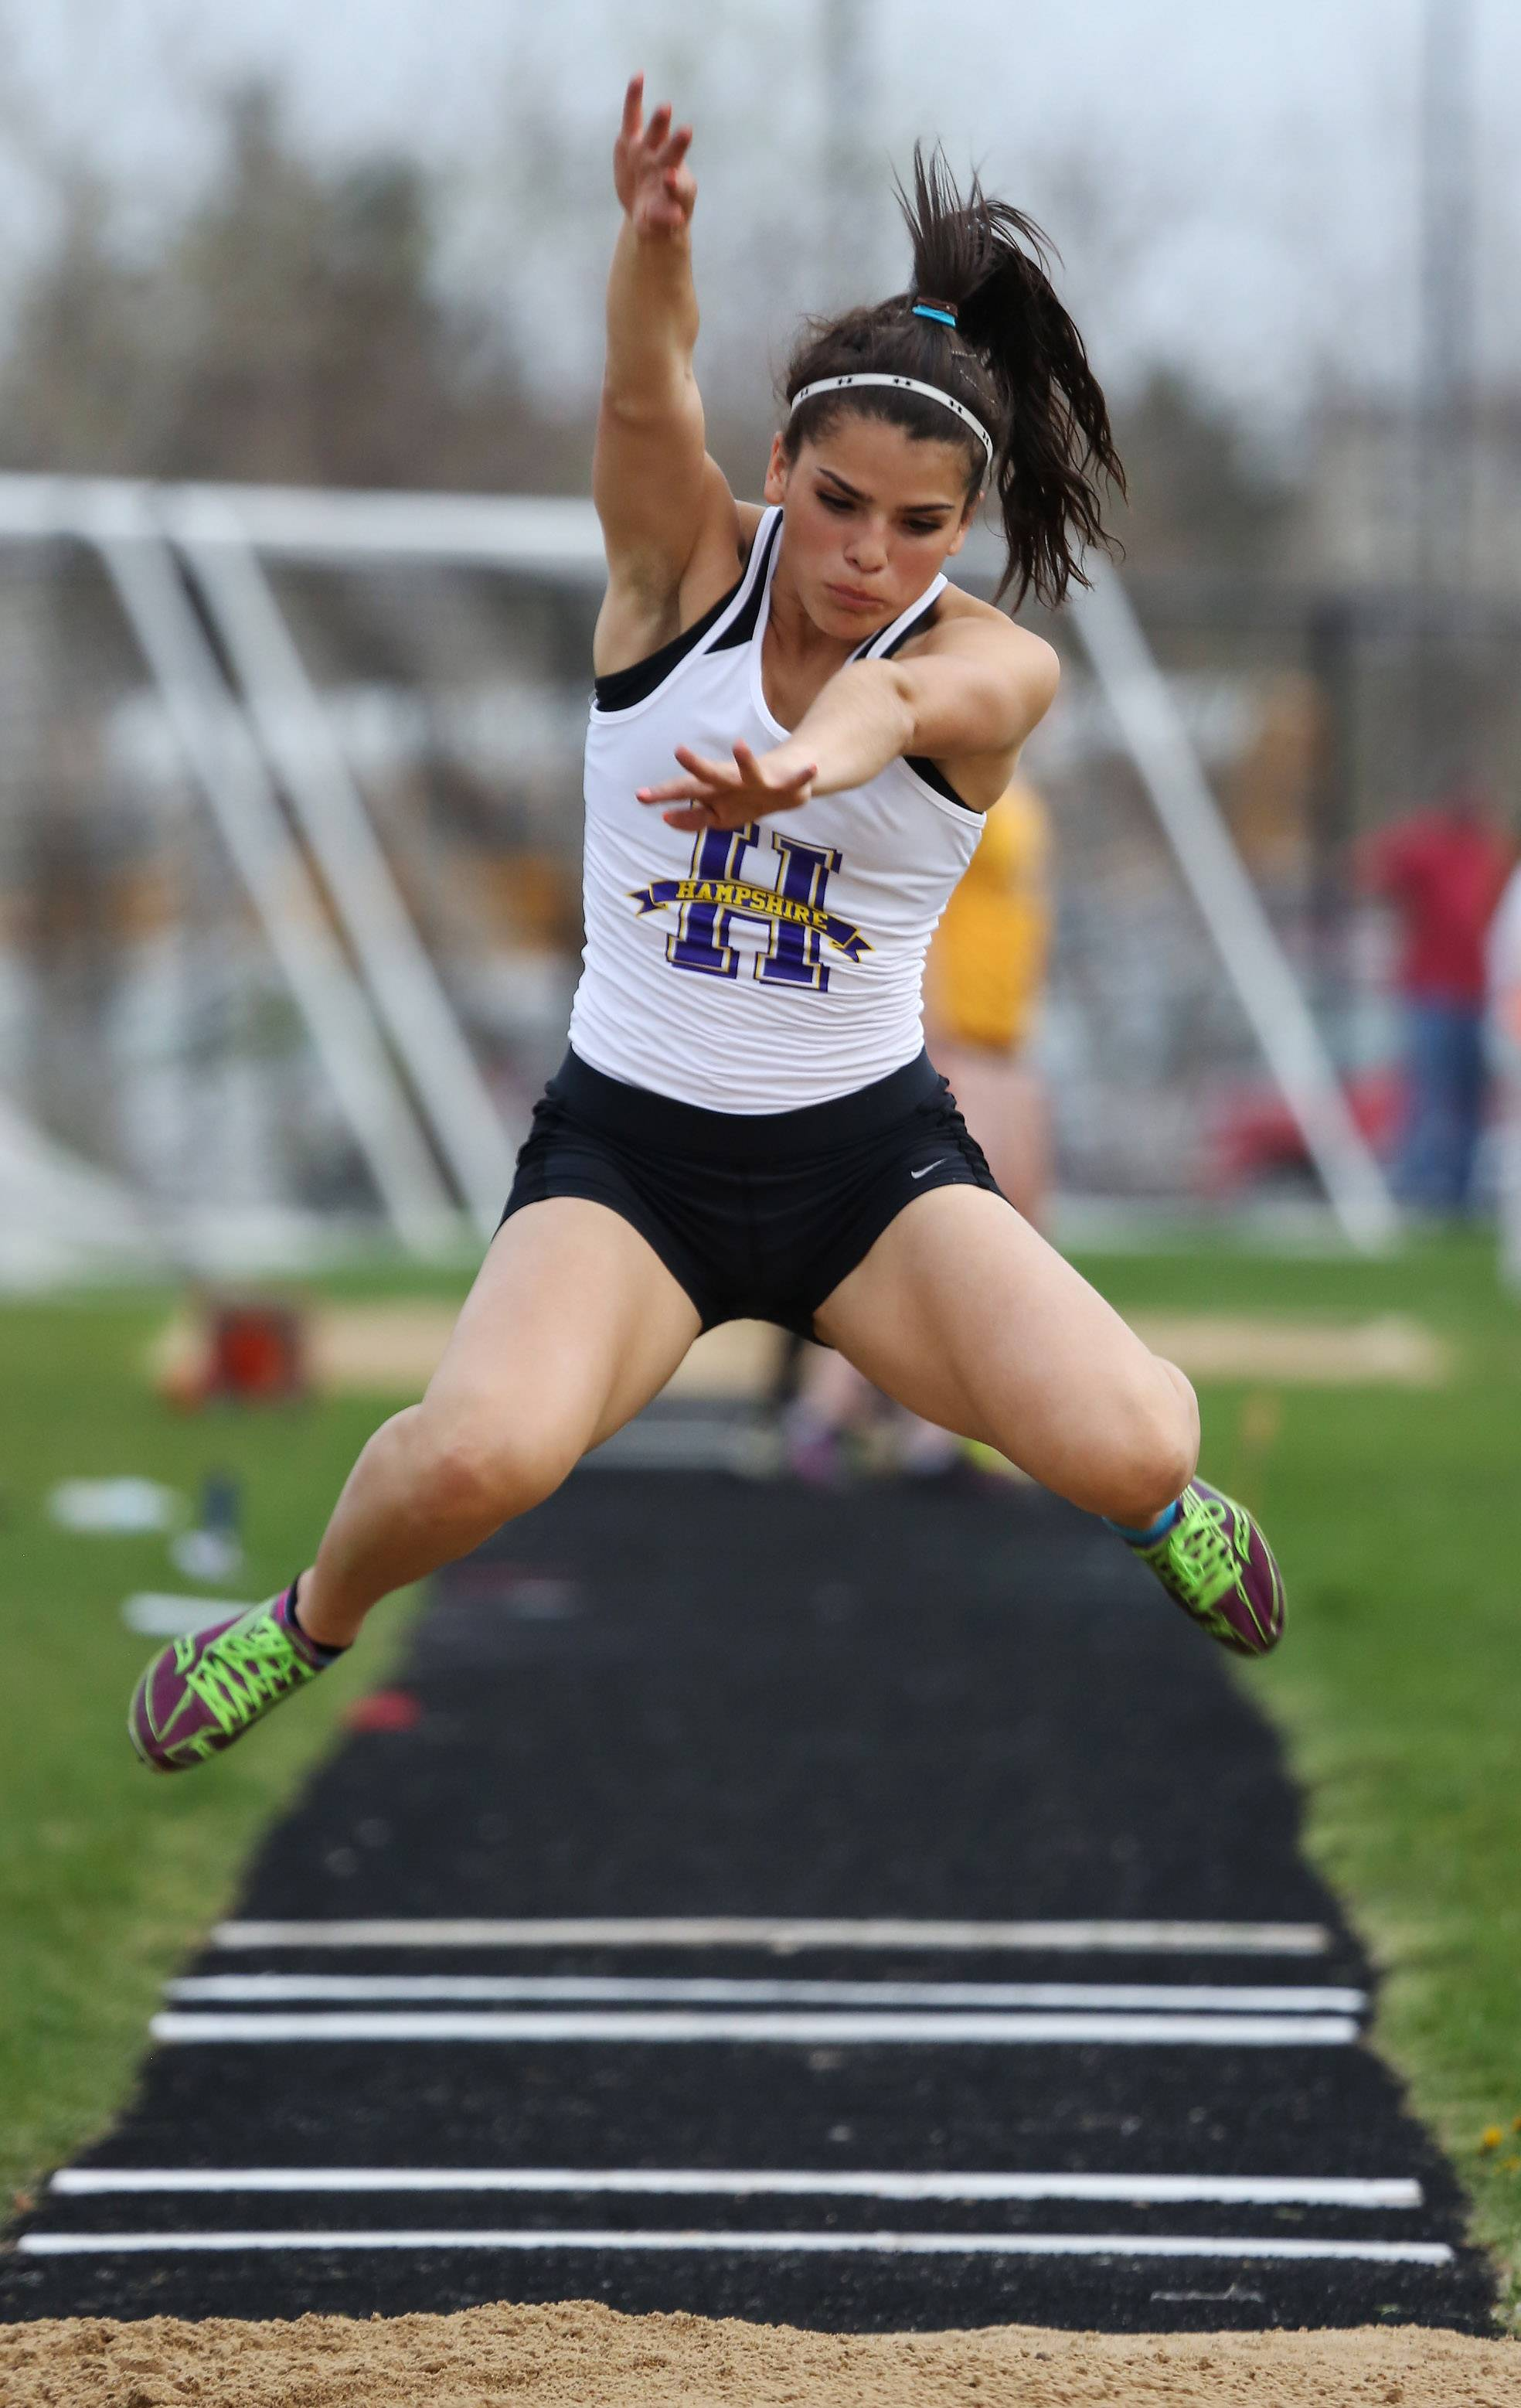 Elizabeth Pagan of Hampshire competes in the long jump during the Fox Valley Conference meet Thursday at Grayslake North.